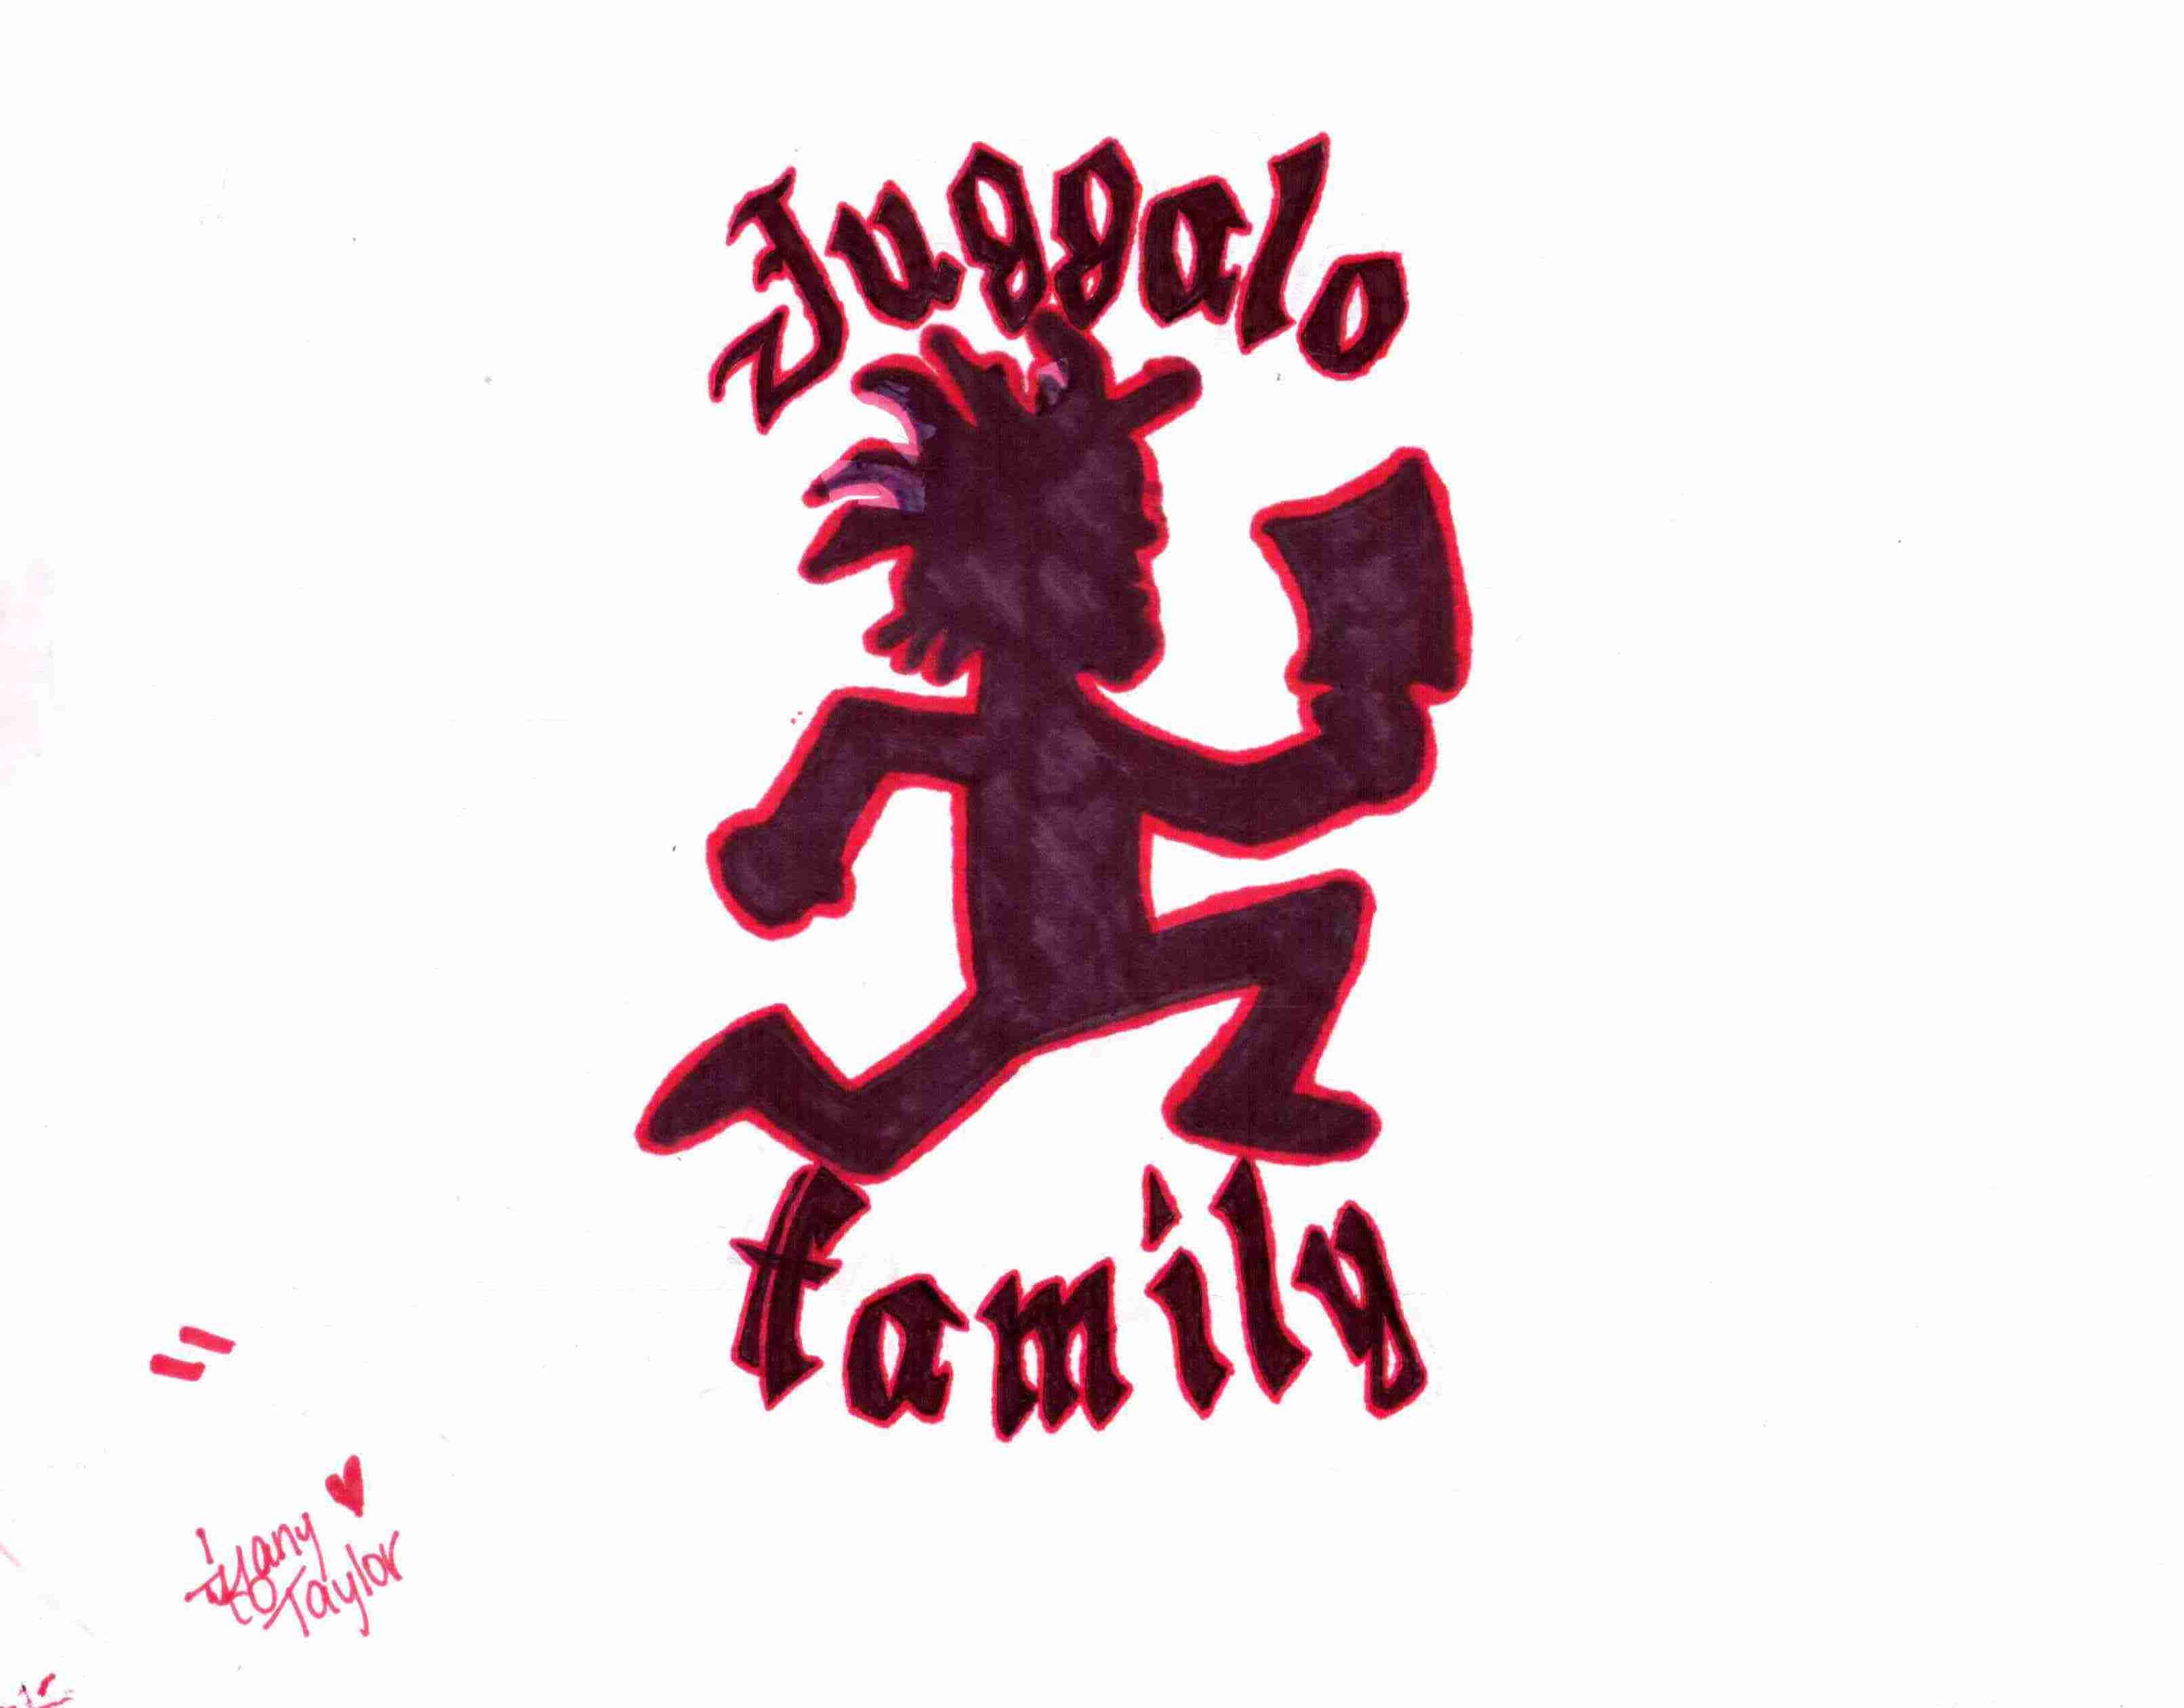 JuGGaLo FaMiLY by InkMunkY